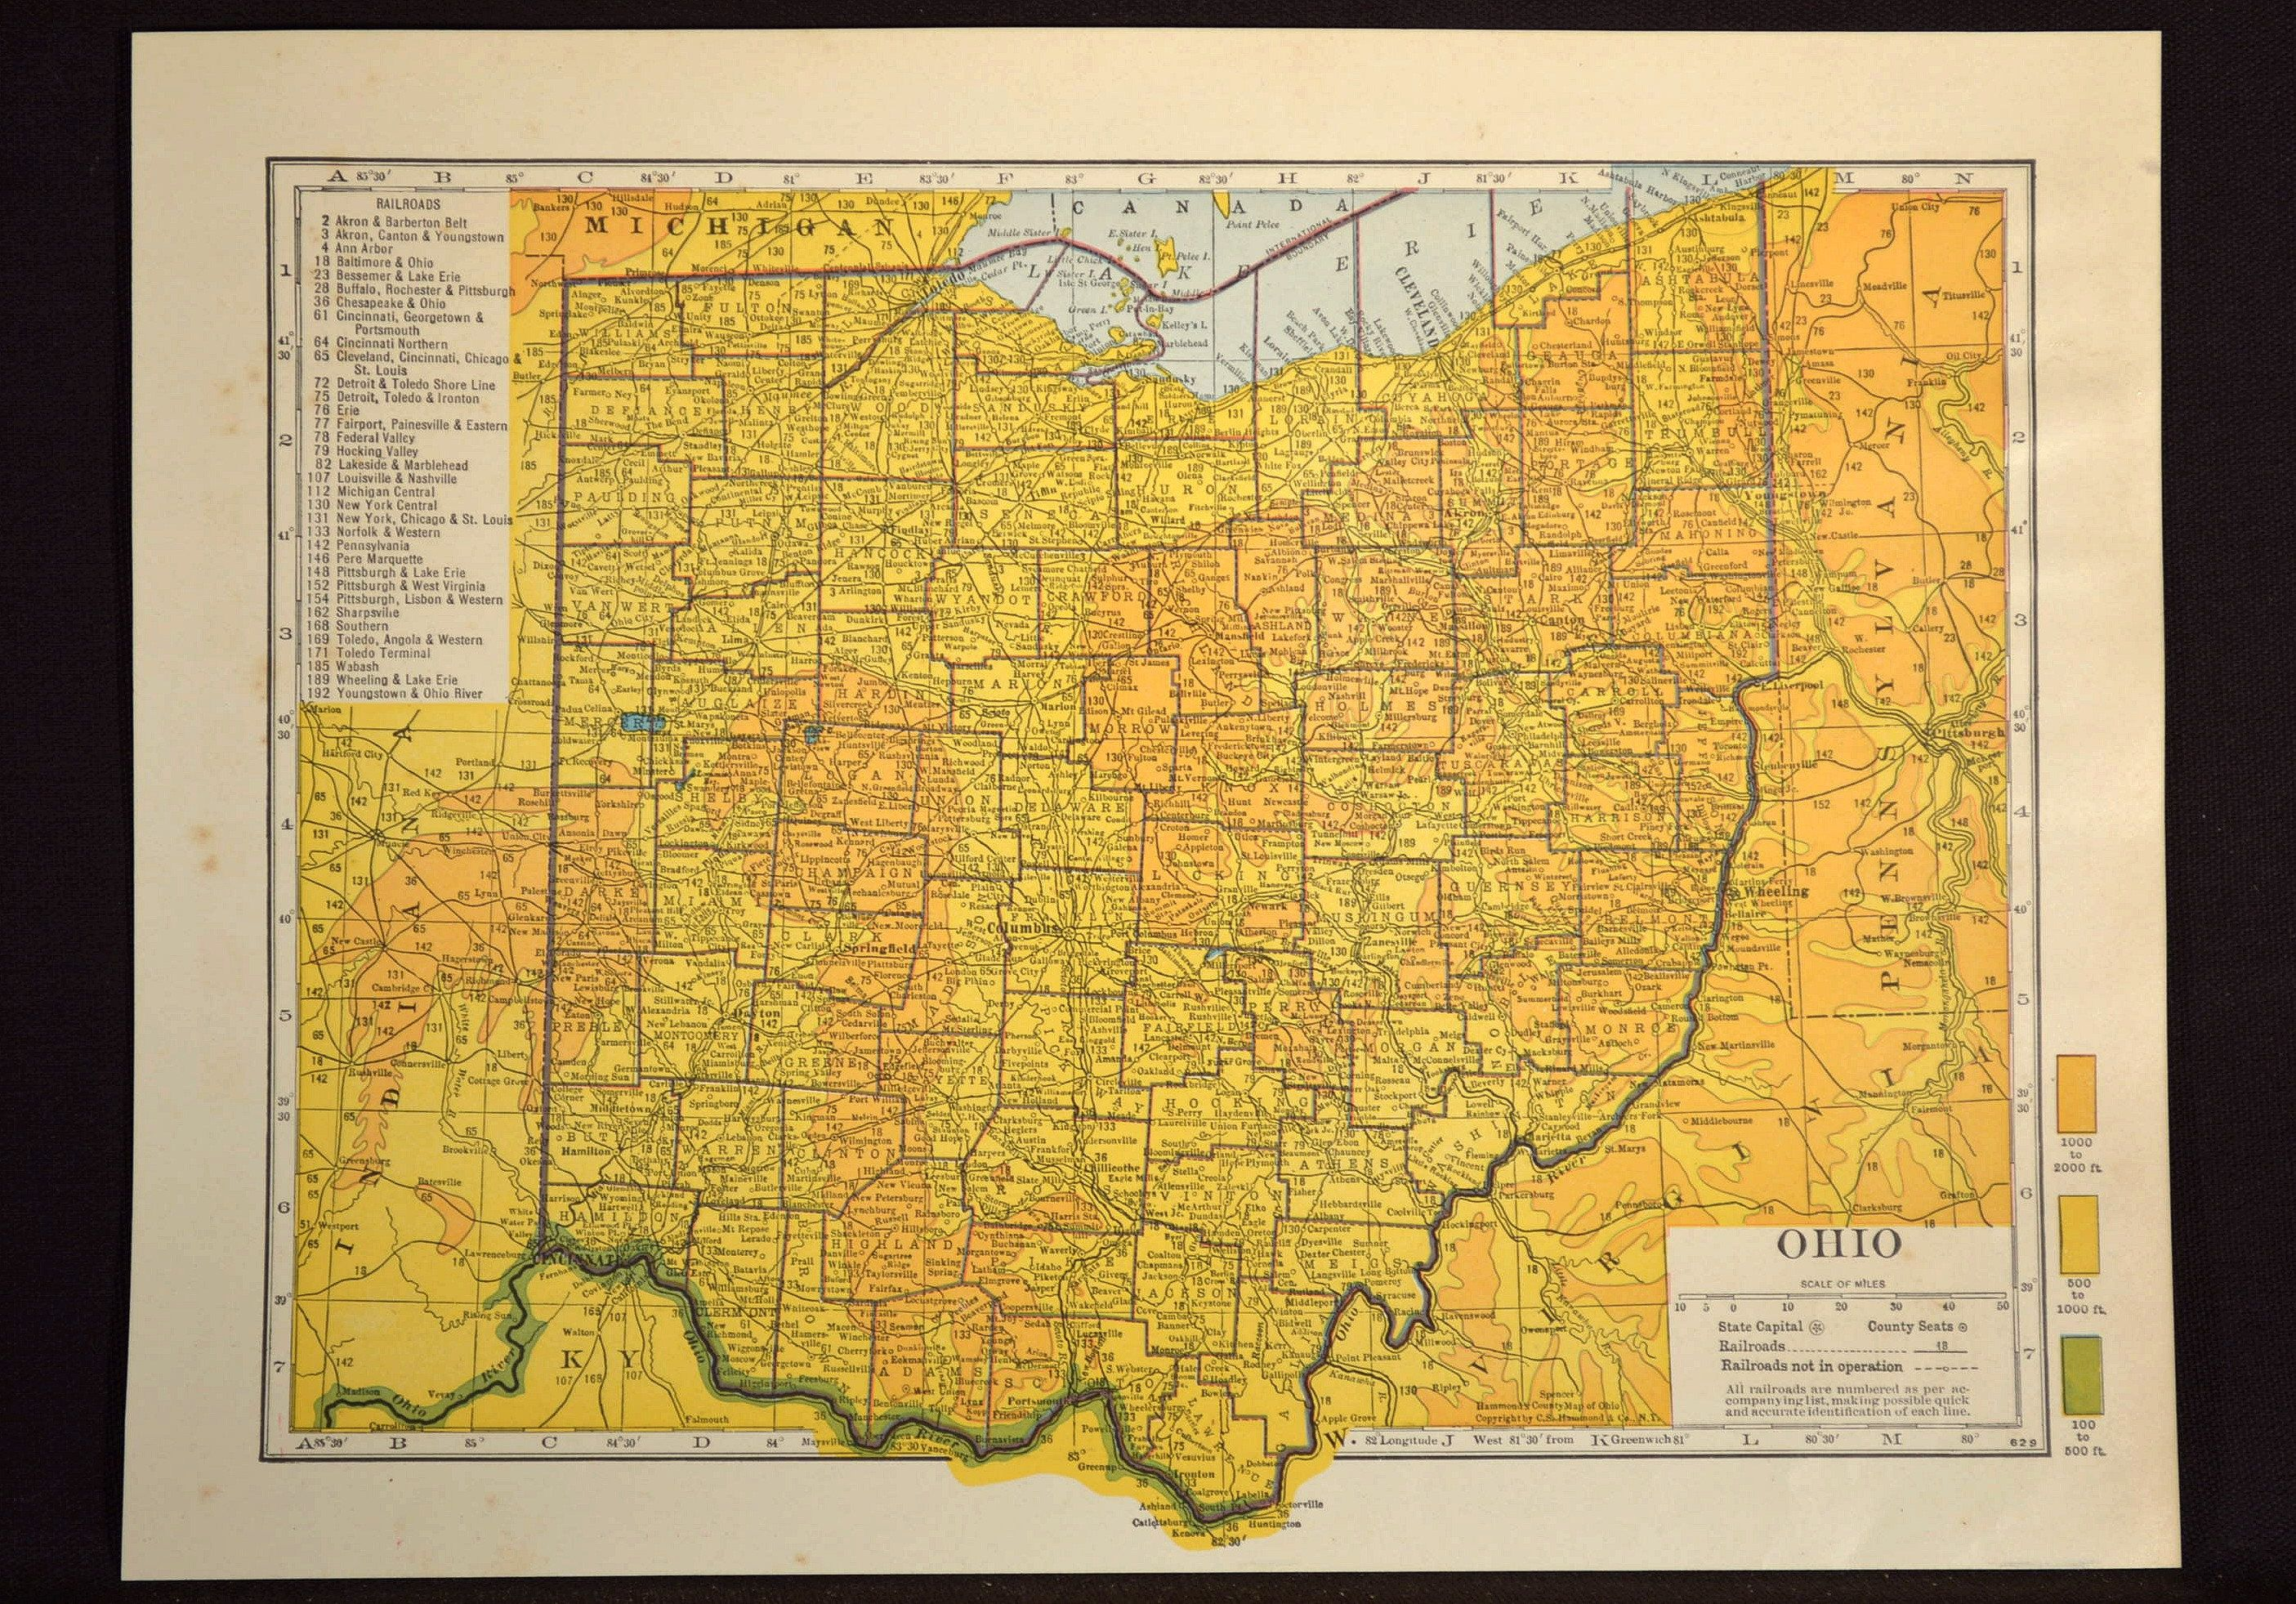 Ohio Map Ohio Topographic Map Colorful Colored Topo | Map Wall Decor ...